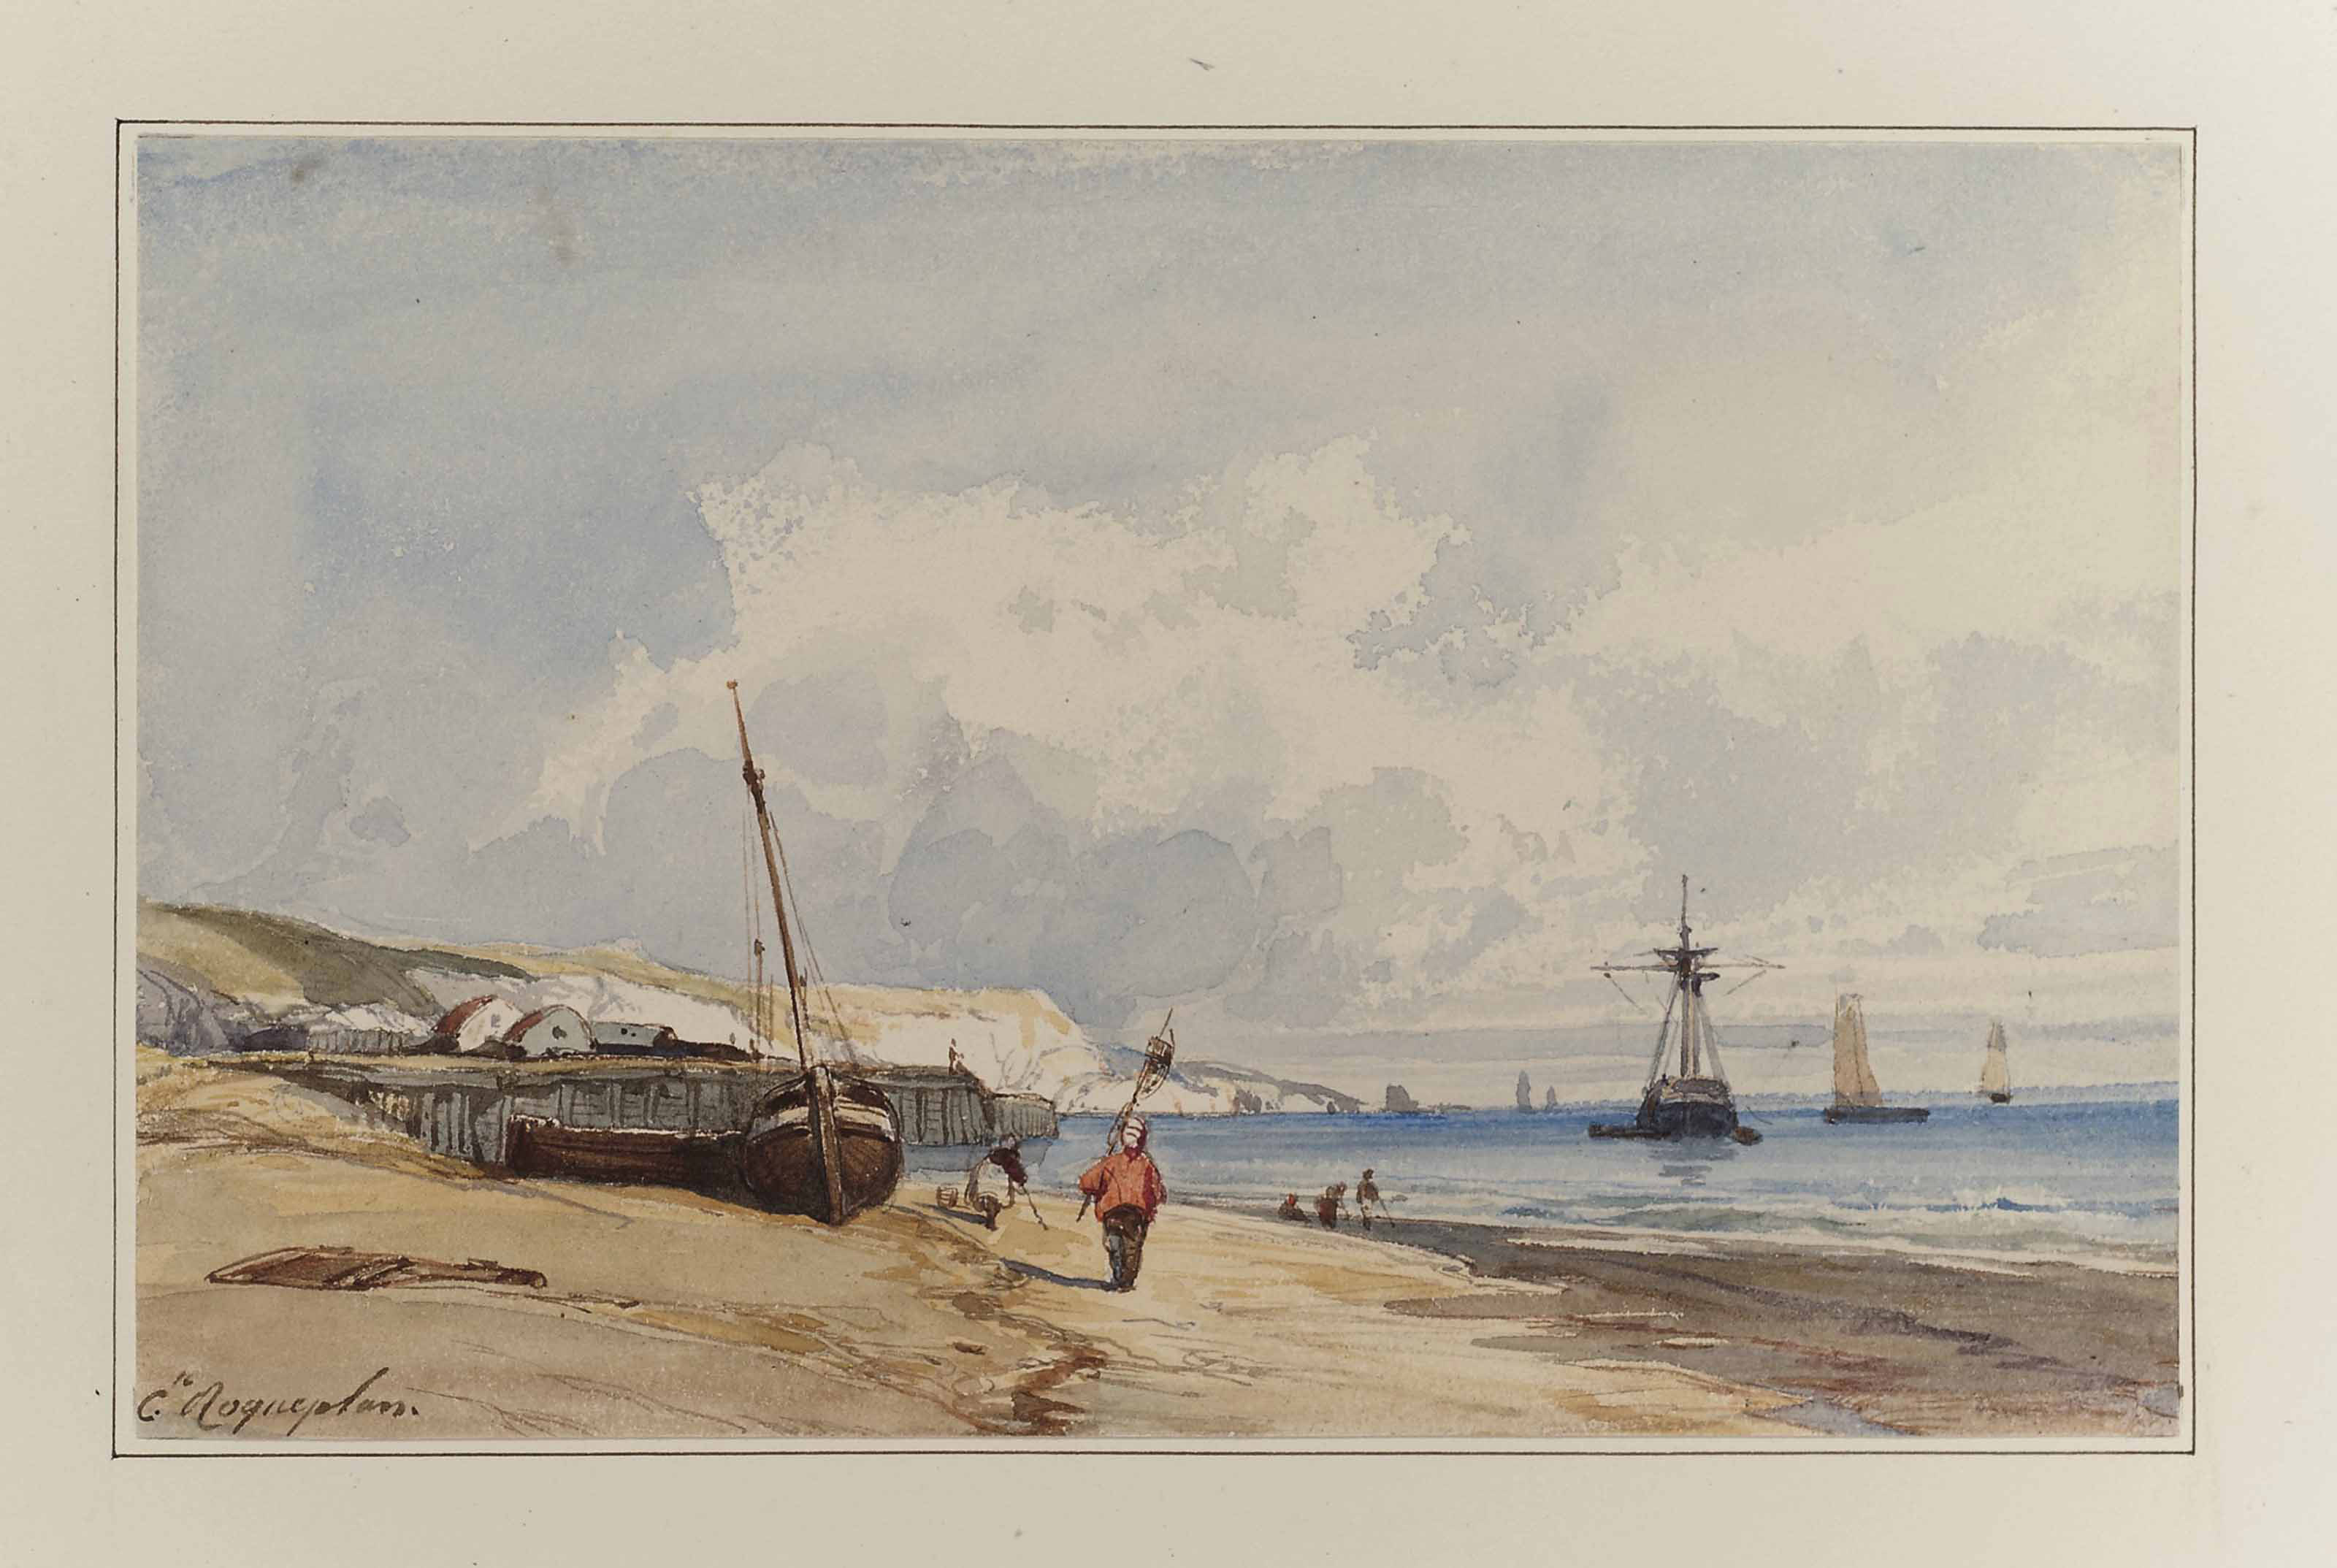 Fishermen and vessels on a beach in Normandy